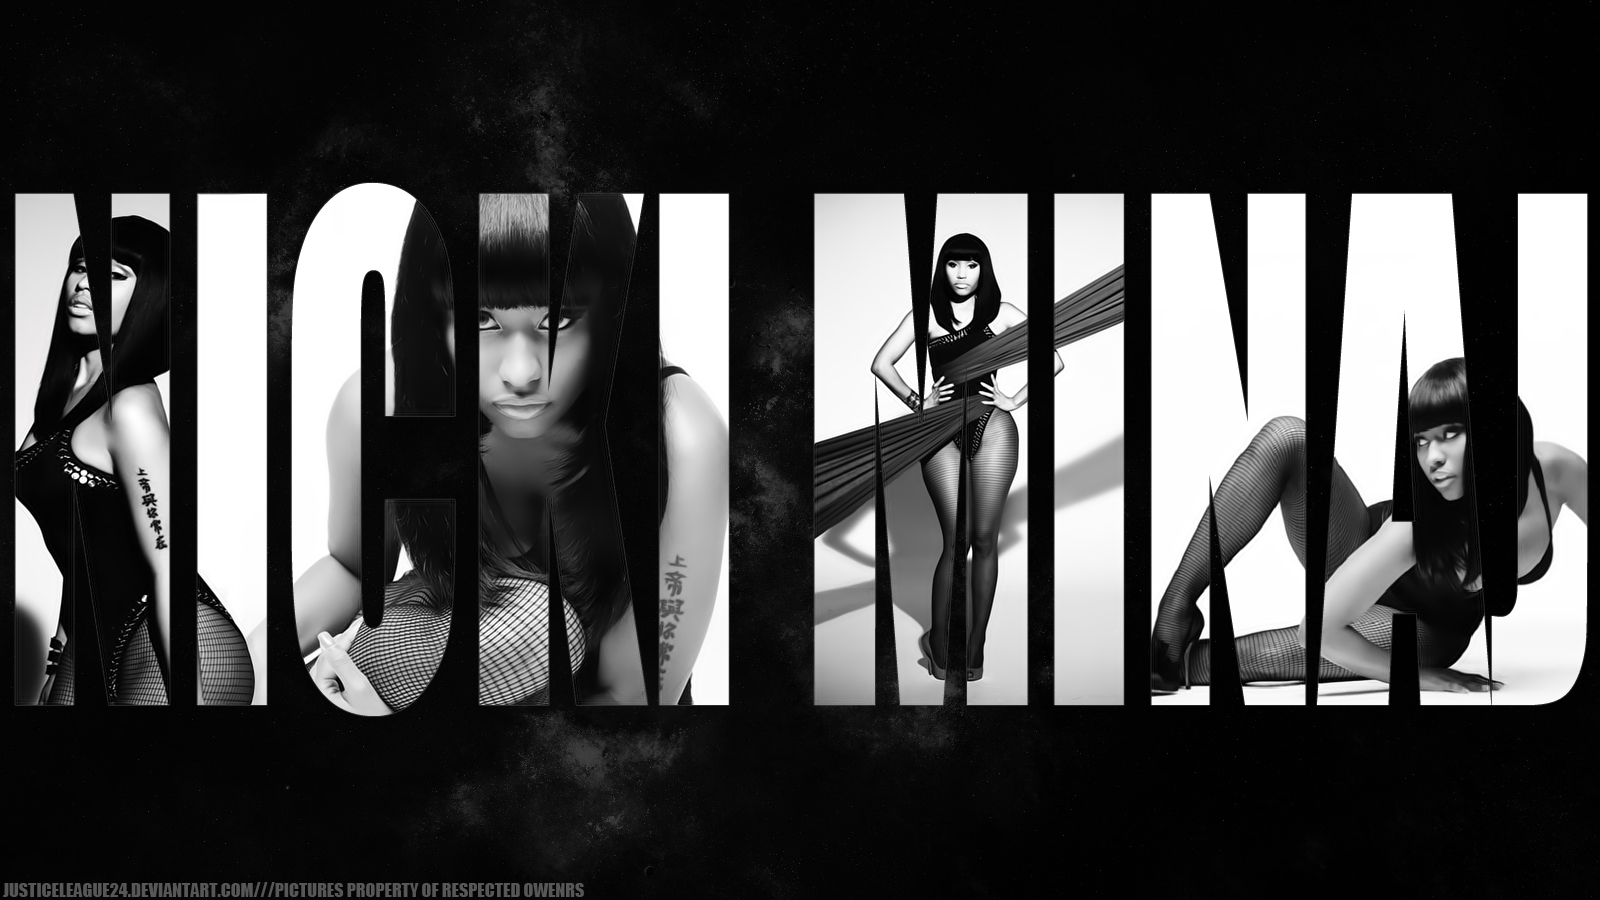 Download Nicki Minaj HD 20 background for your phone (iPhone & android ...